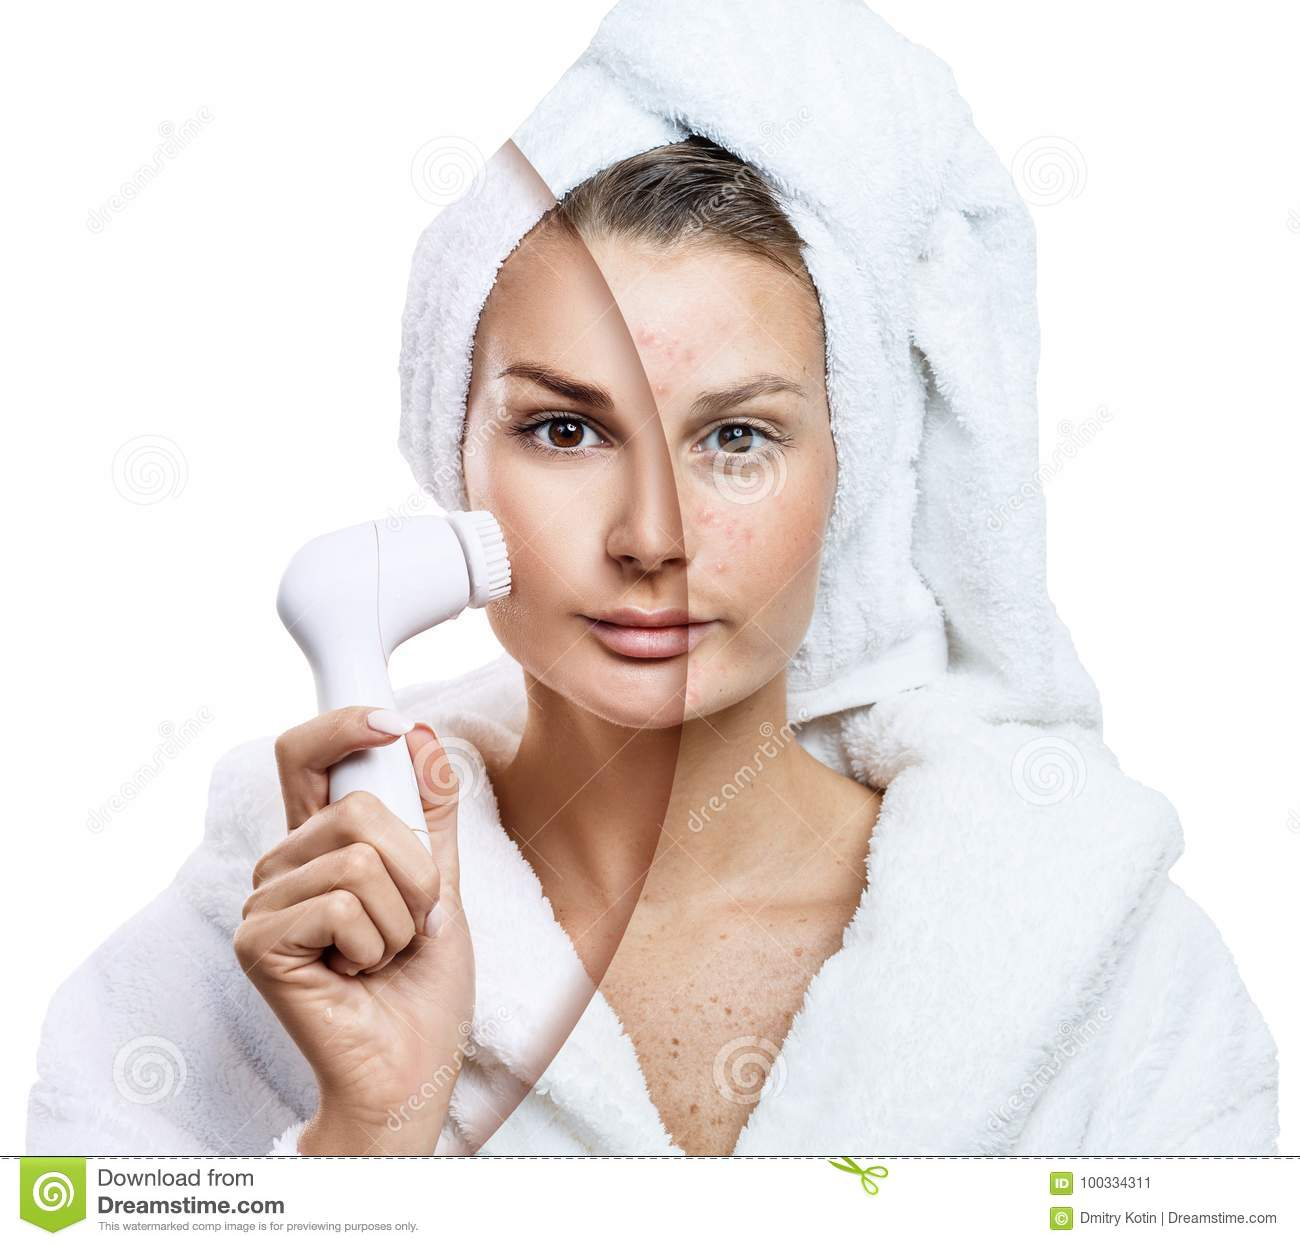 Mechanical cleansing of the face: what it is, description of the procedure, contraindications 46